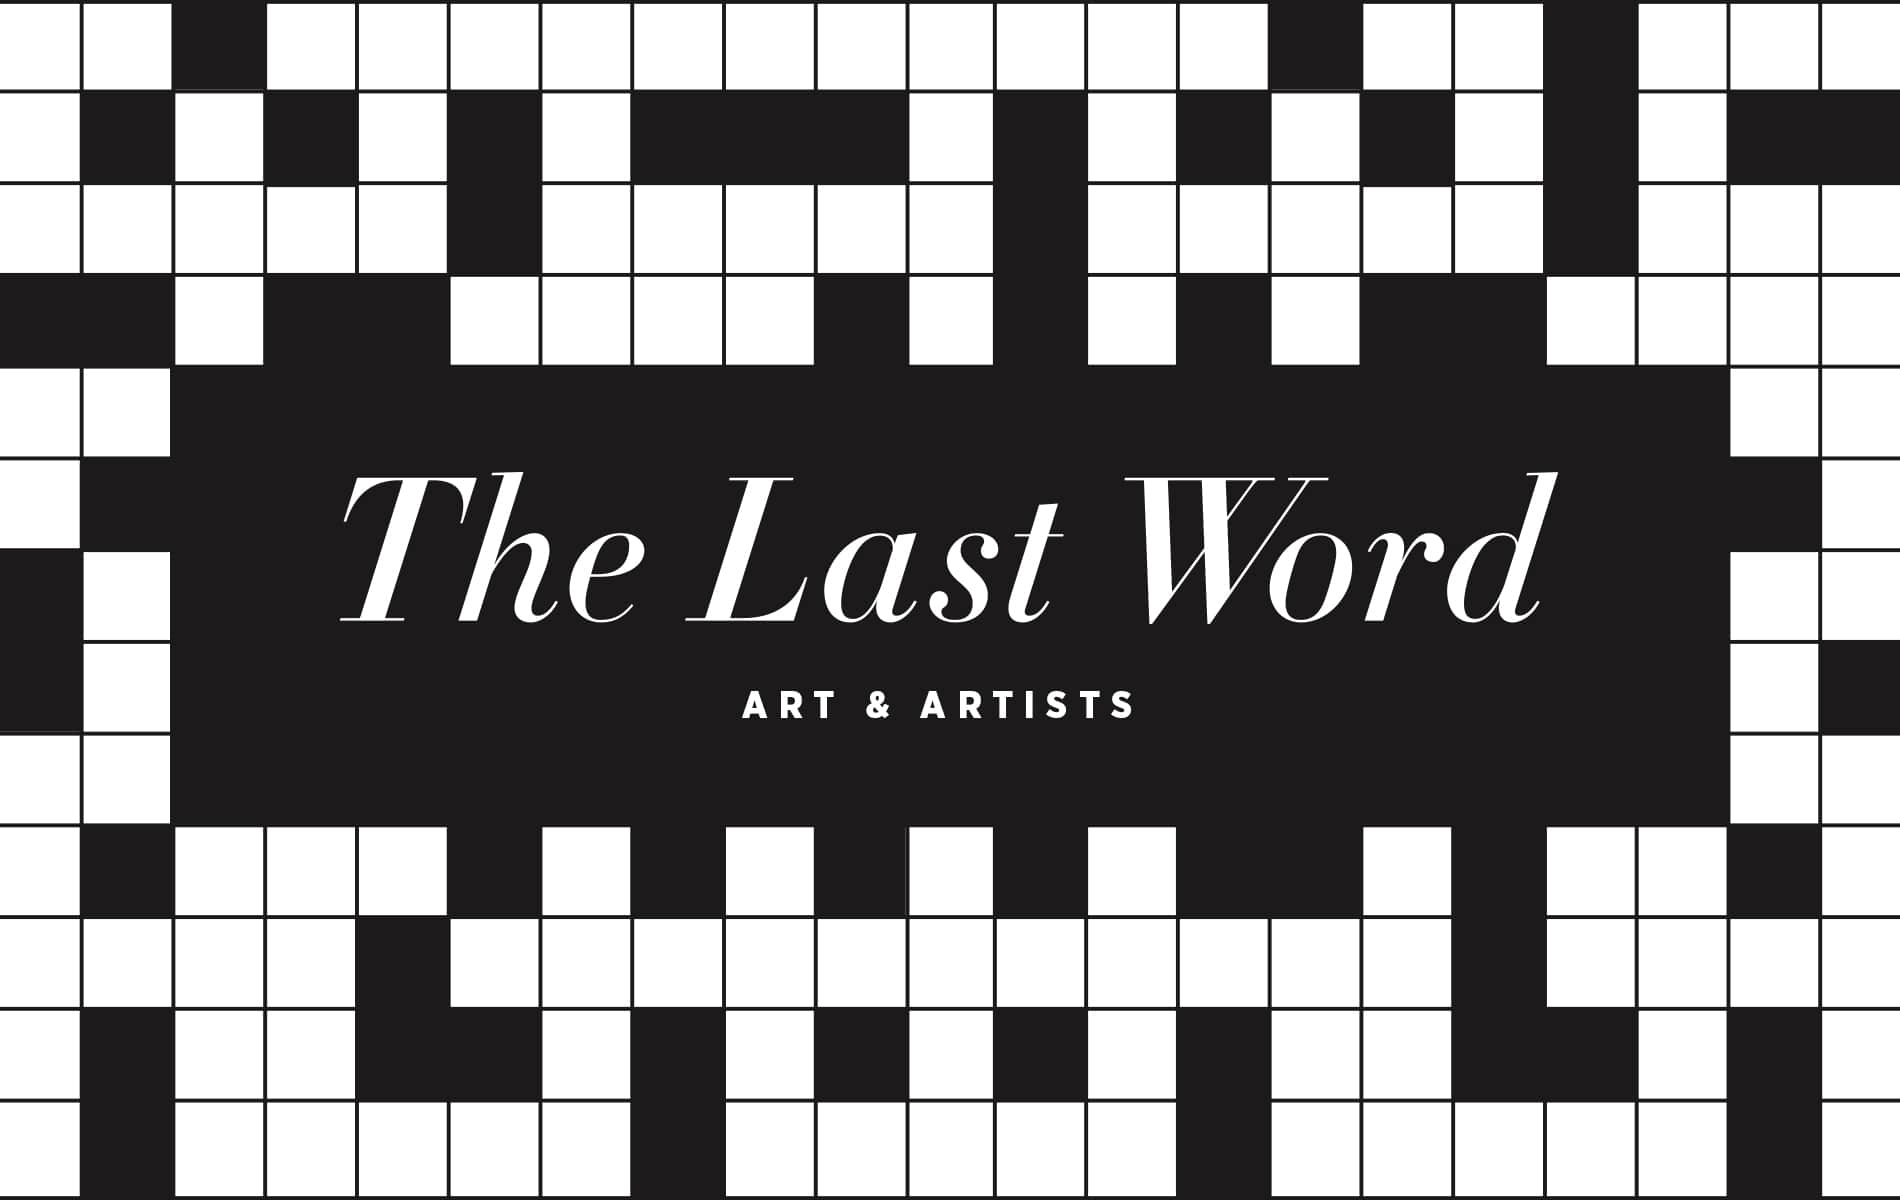 VIE Magazine - July 2019 - Art & Artists - Crossword Puzzle